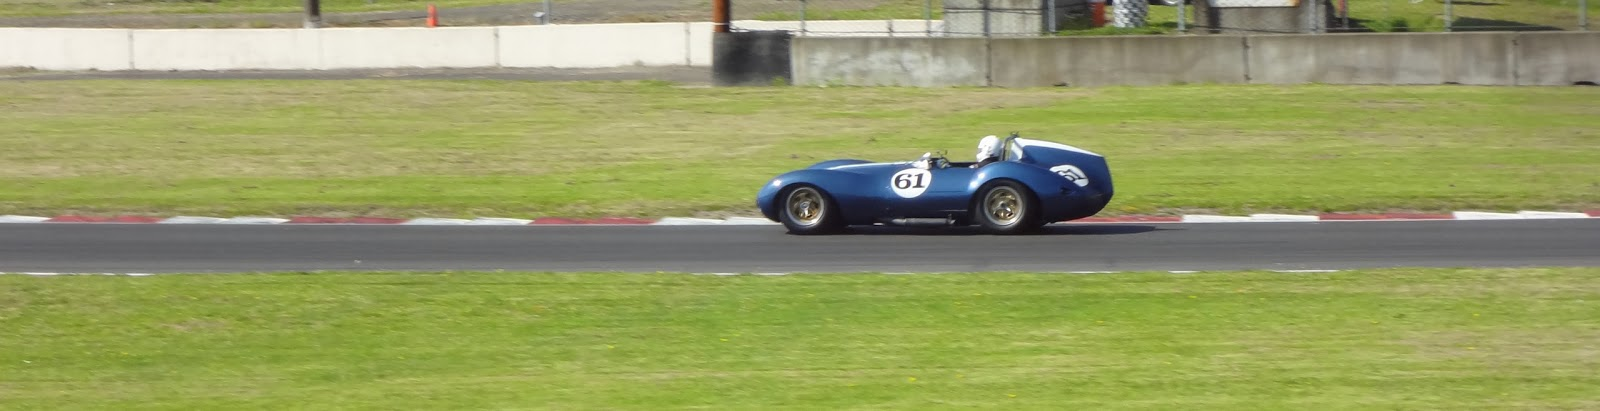 Vintage Sport Car Racing - Why Should Anyone Care?   Vintage and ...